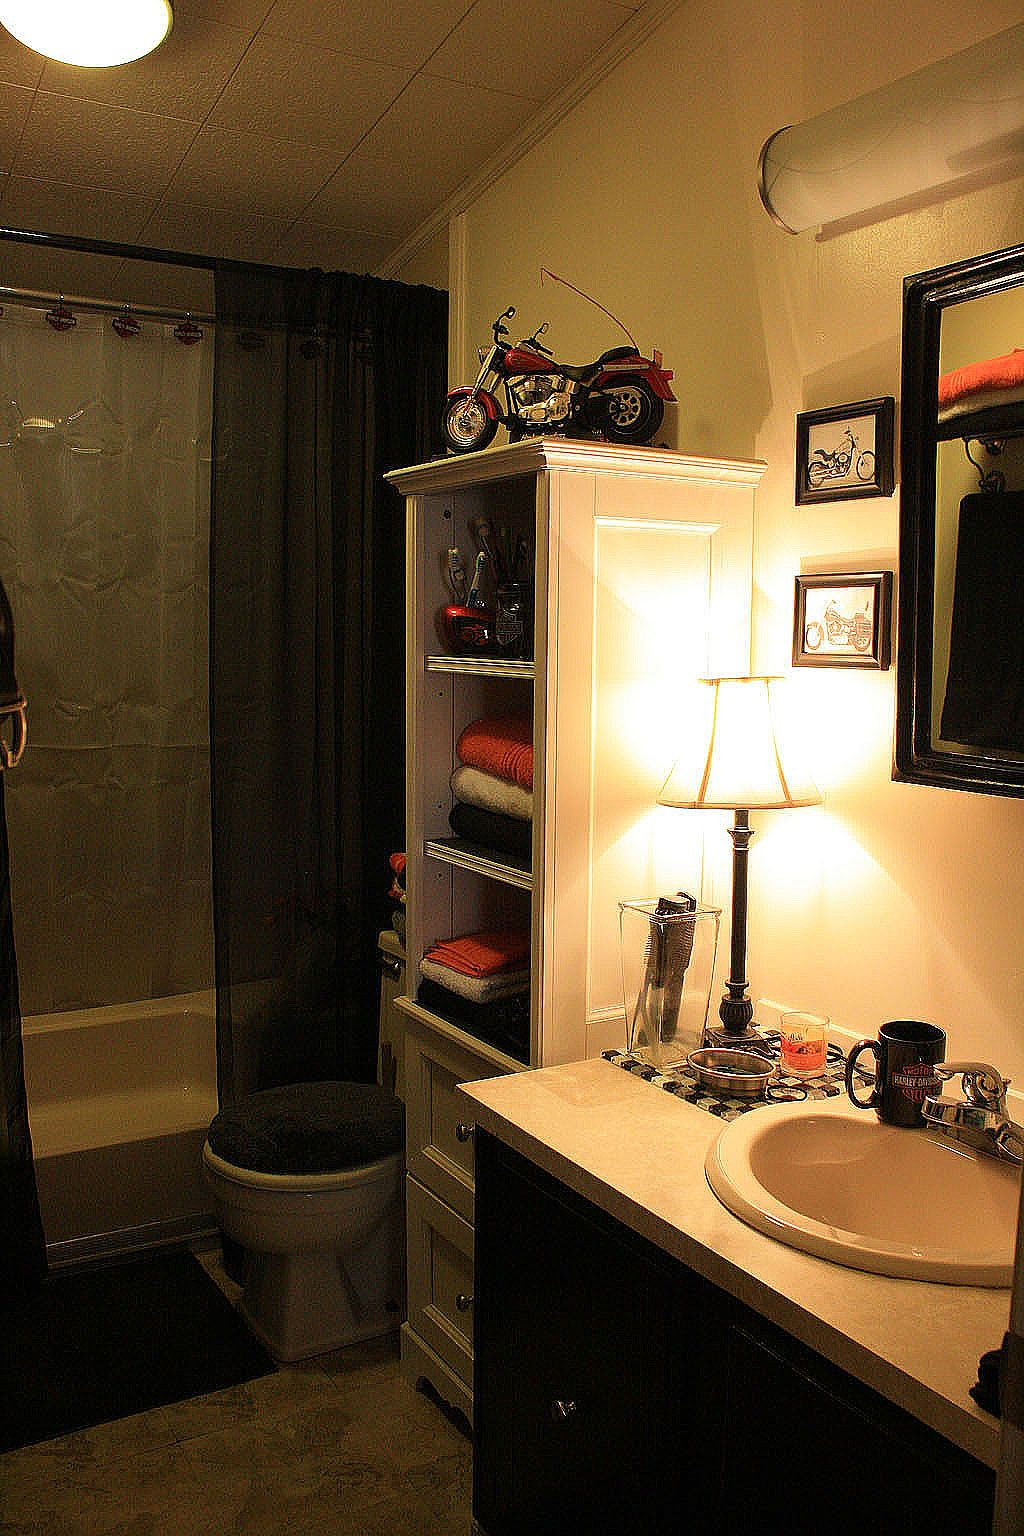 Harley Davidson bathroom on a budget. Even the light fixtures were ...